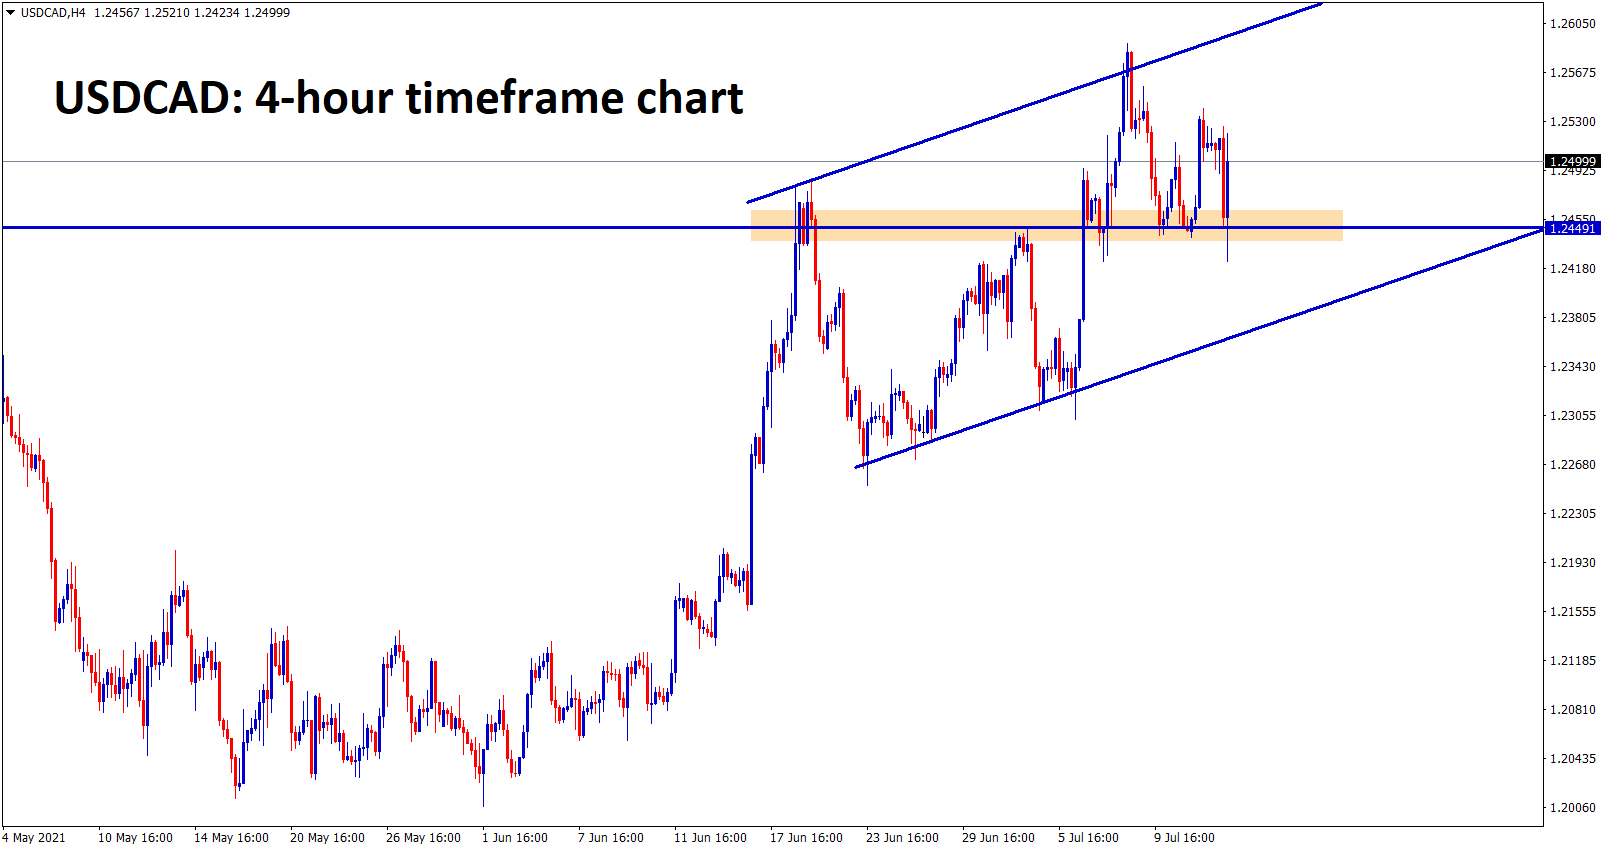 USDCAD bounces back after hitting the previous broken resistance which might still acting as a new support